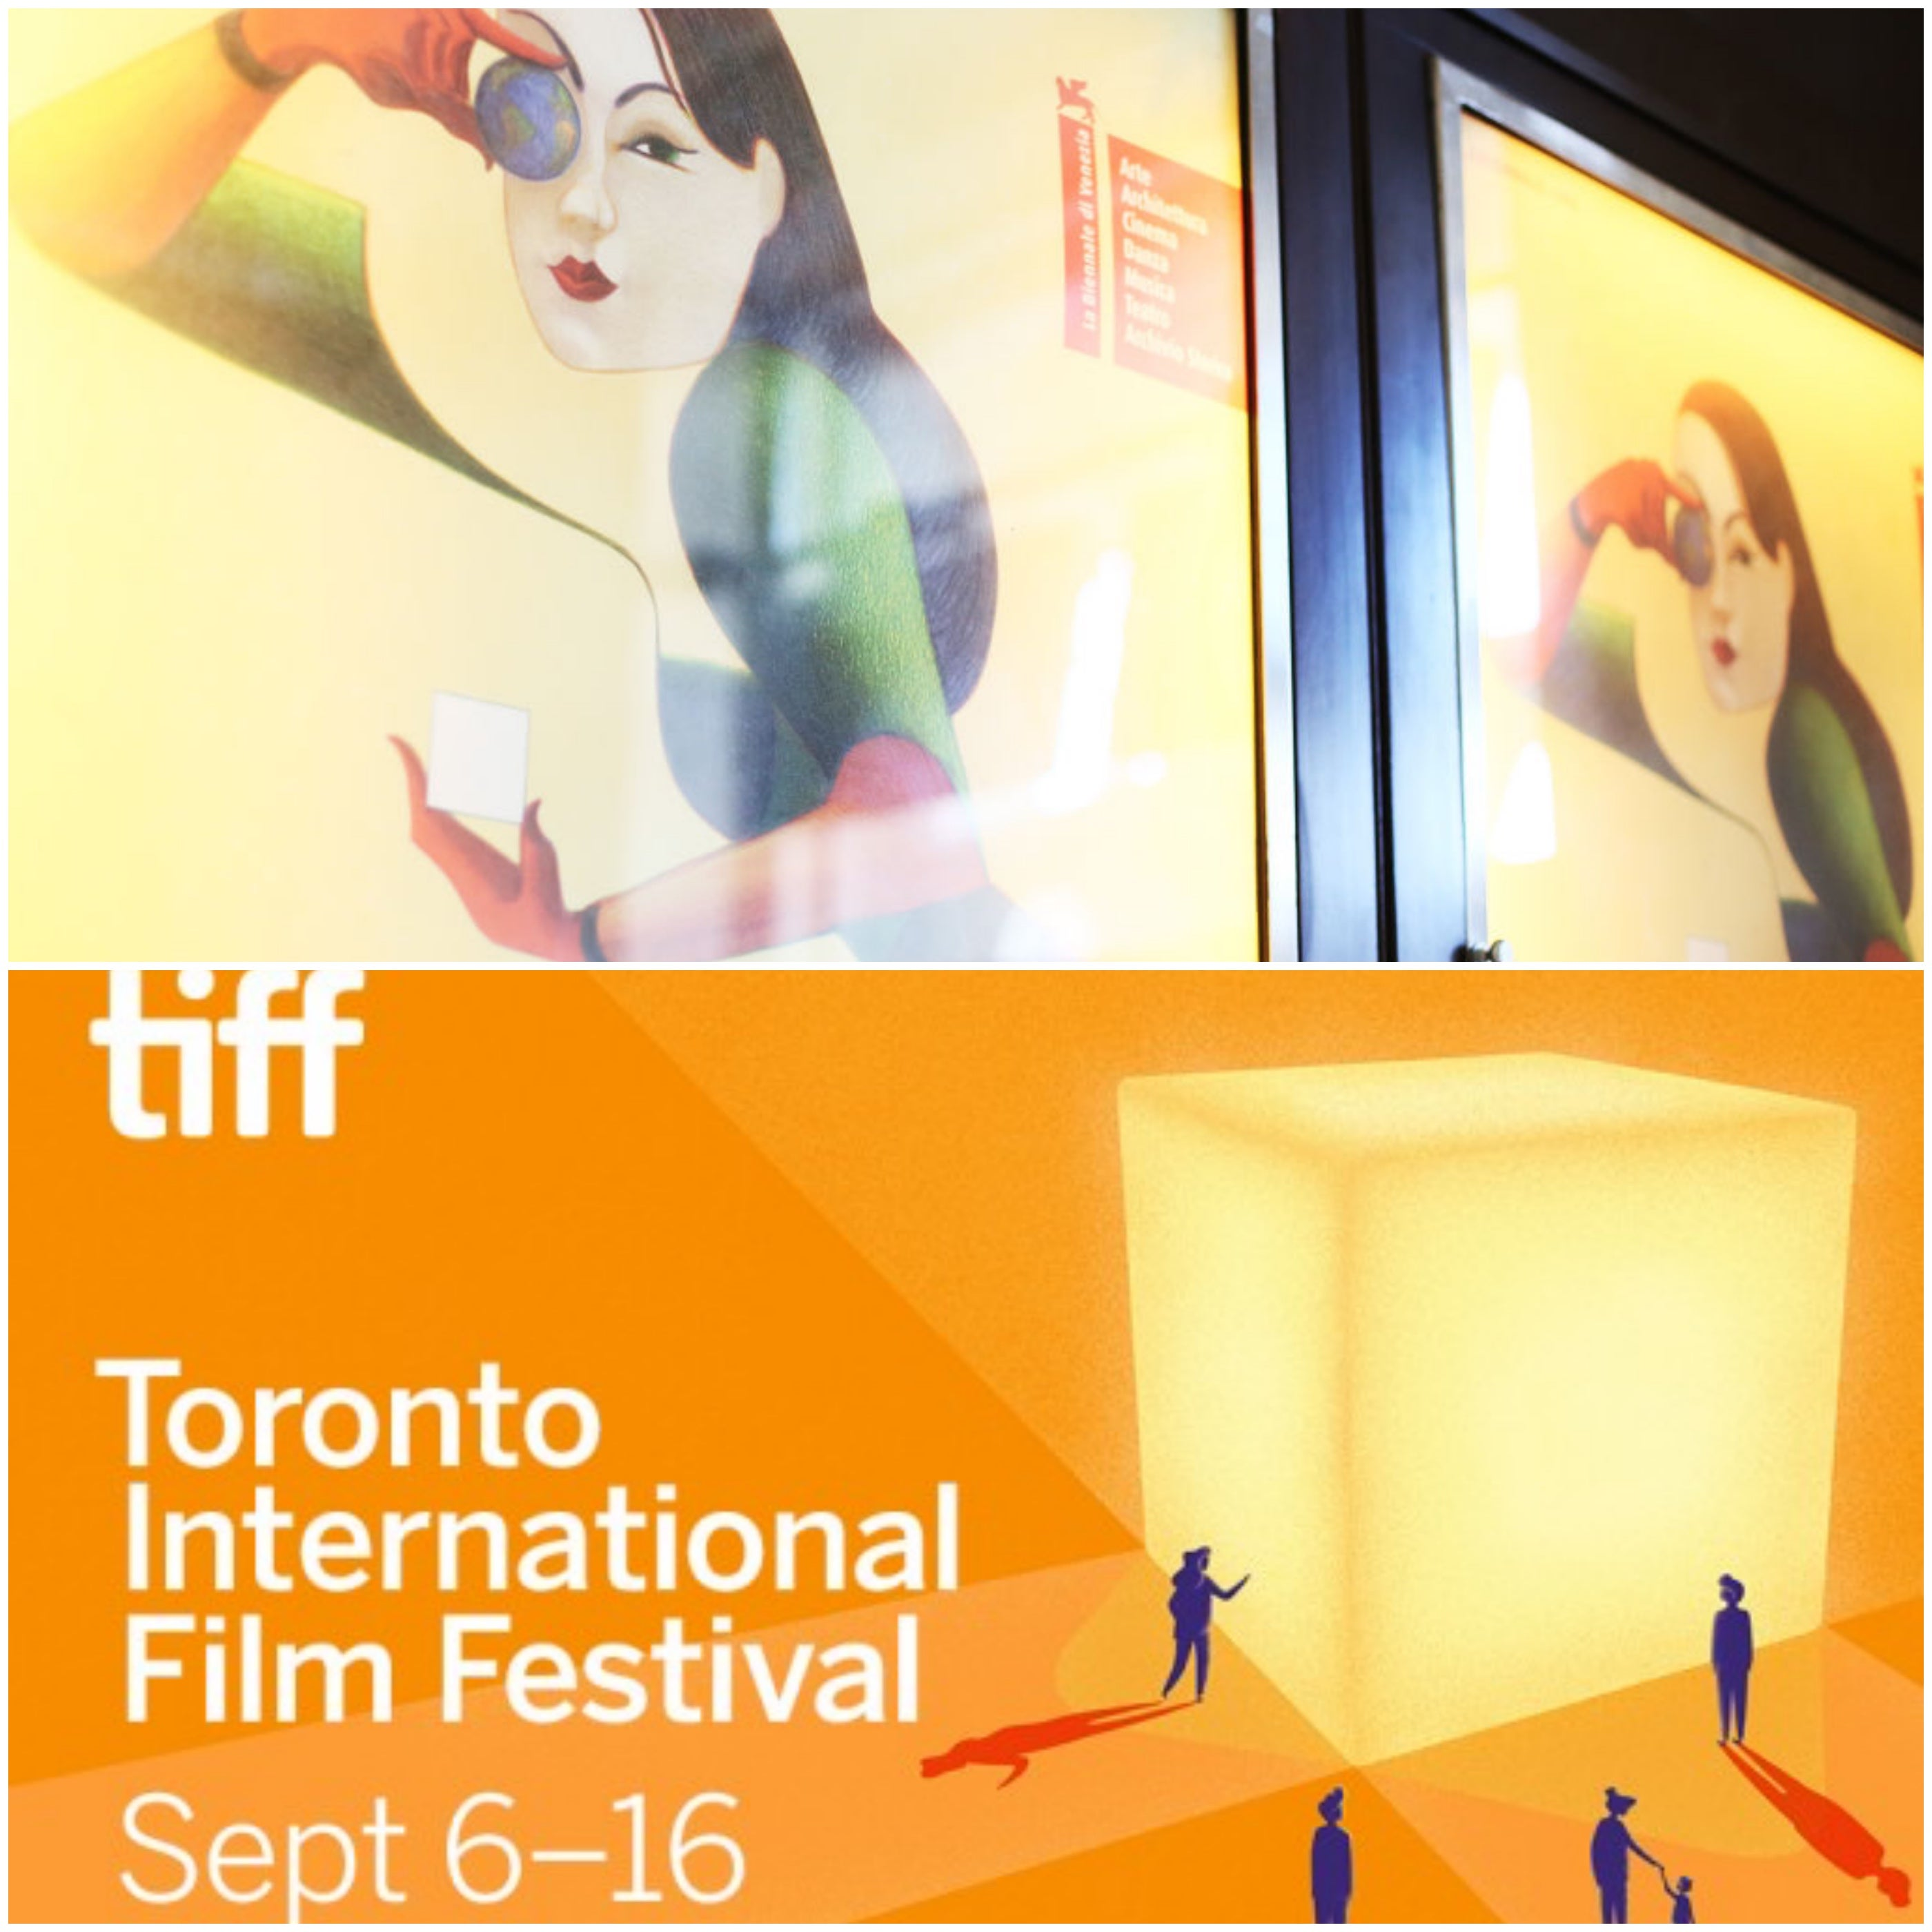 POsters for the Venice and Toronto film festivals 2018